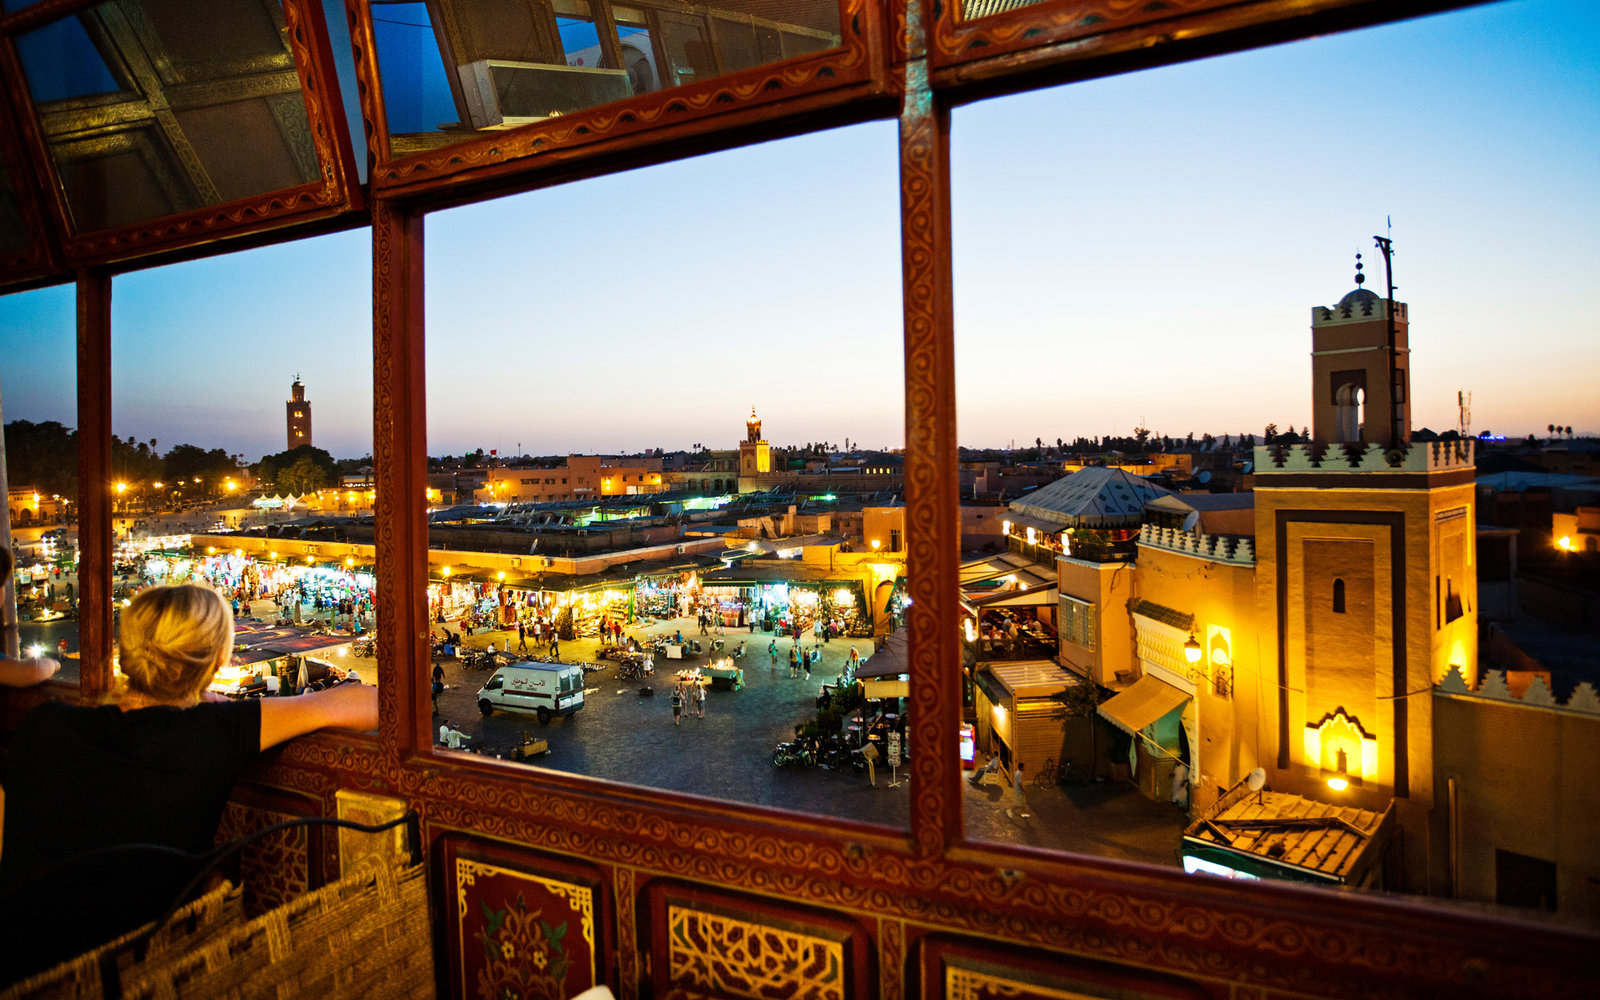 No. 5: Marrakesh, Morocco